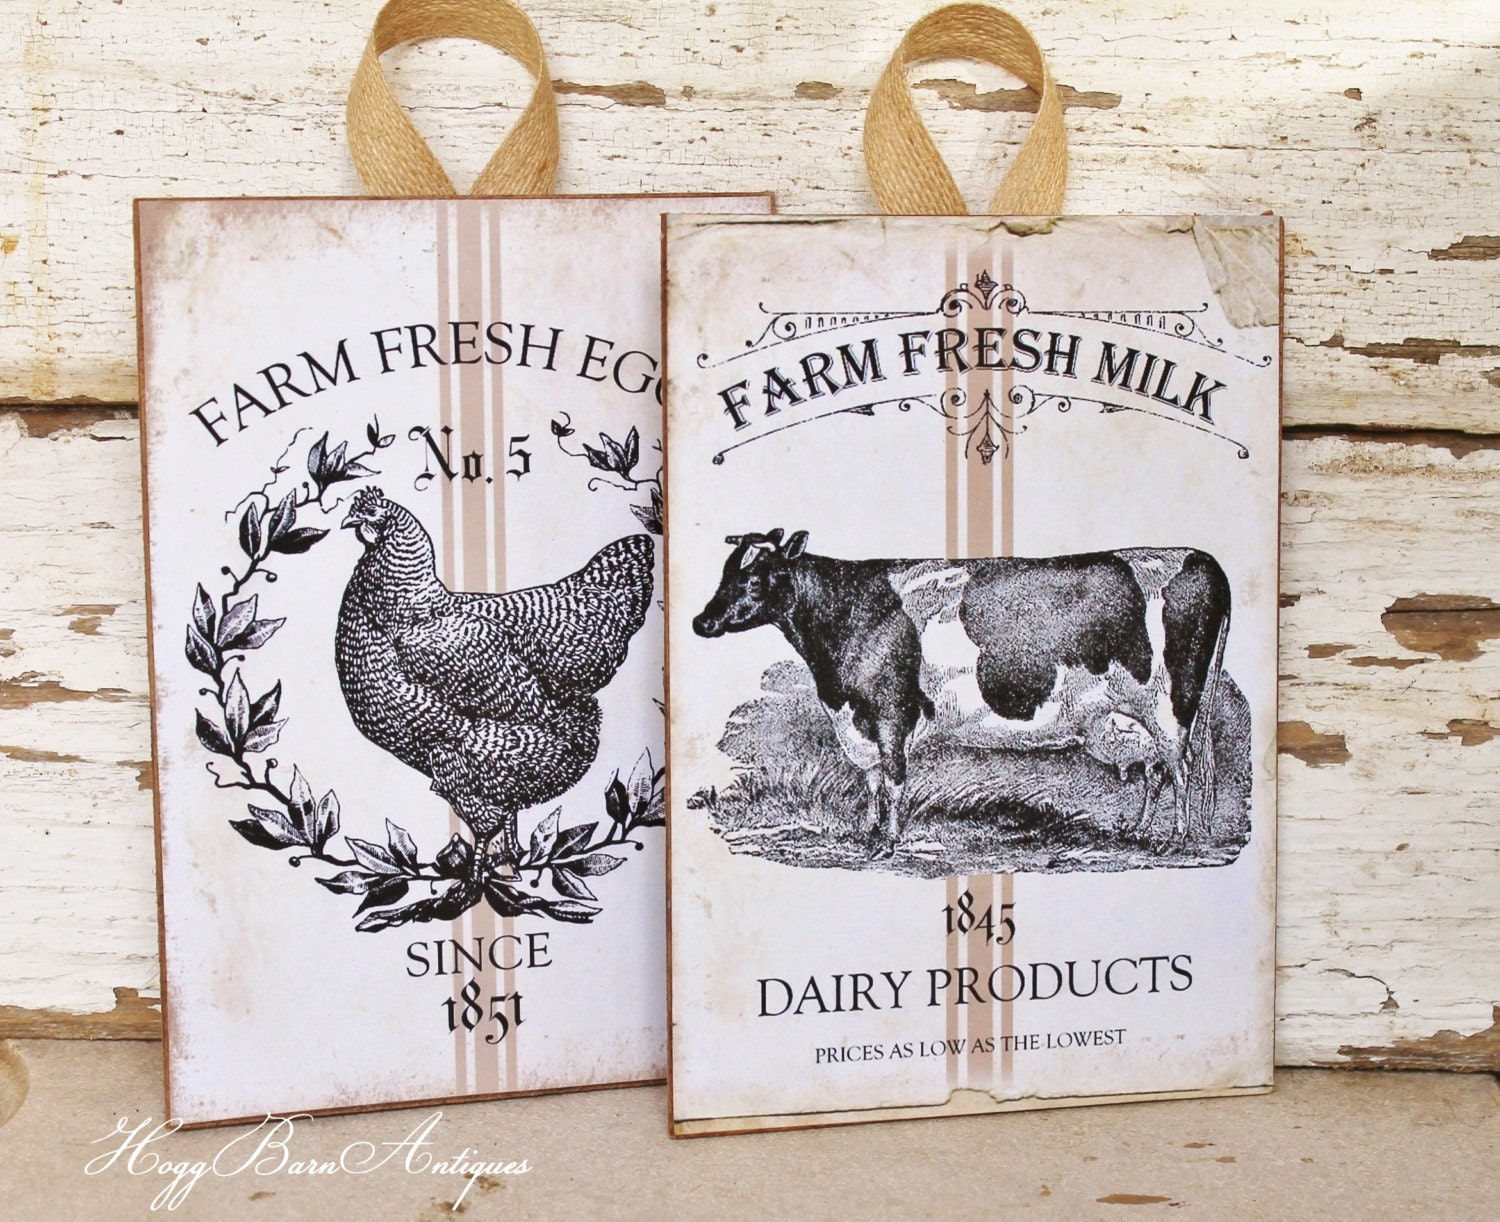 Farmhouse Wood Sign Wall Art Print Milk Eggs Grain Sack Chicken Cow Vintage French Country Chic Farmhouse Decor SET OF 2